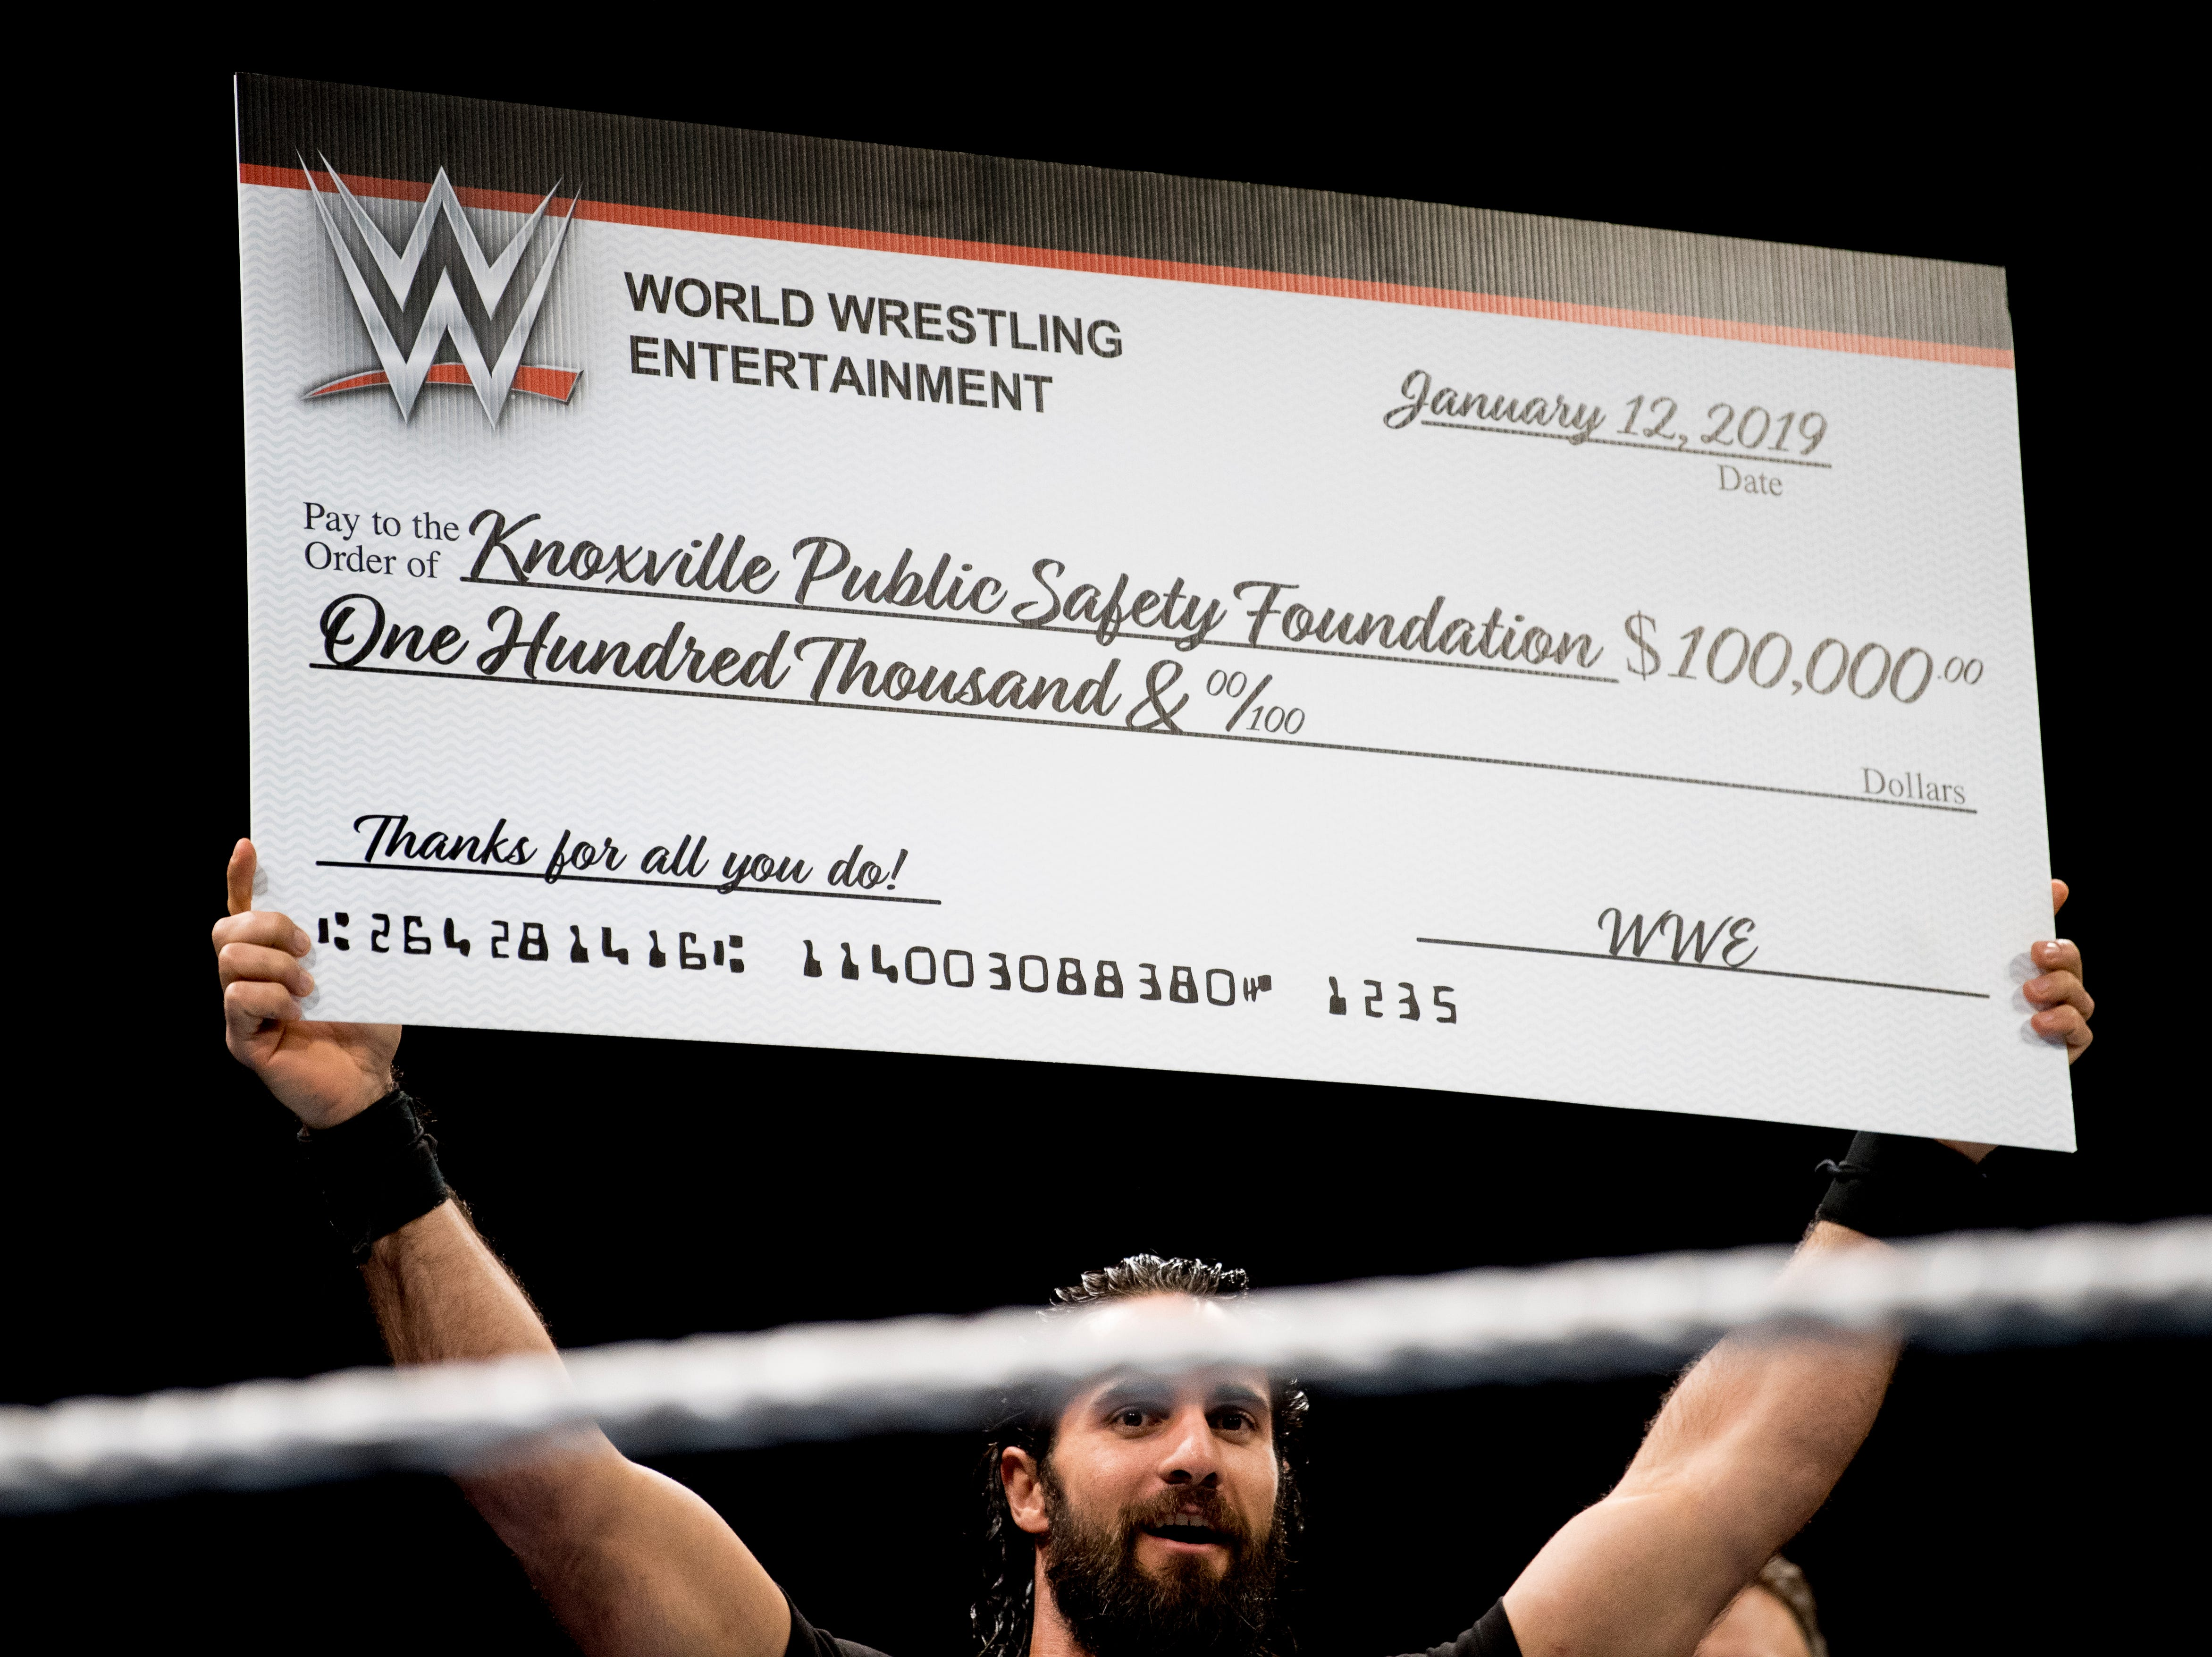 Seth Rollins holds a check from WWE to the Knoxville Public Safety Foundation during a WWE Live performance at the Knoxville Civic Coliseum in Knoxville, Tennessee on Saturday, January 12, 2019. *KNOXVILLE NEWS SENTINEL USE ONLY*